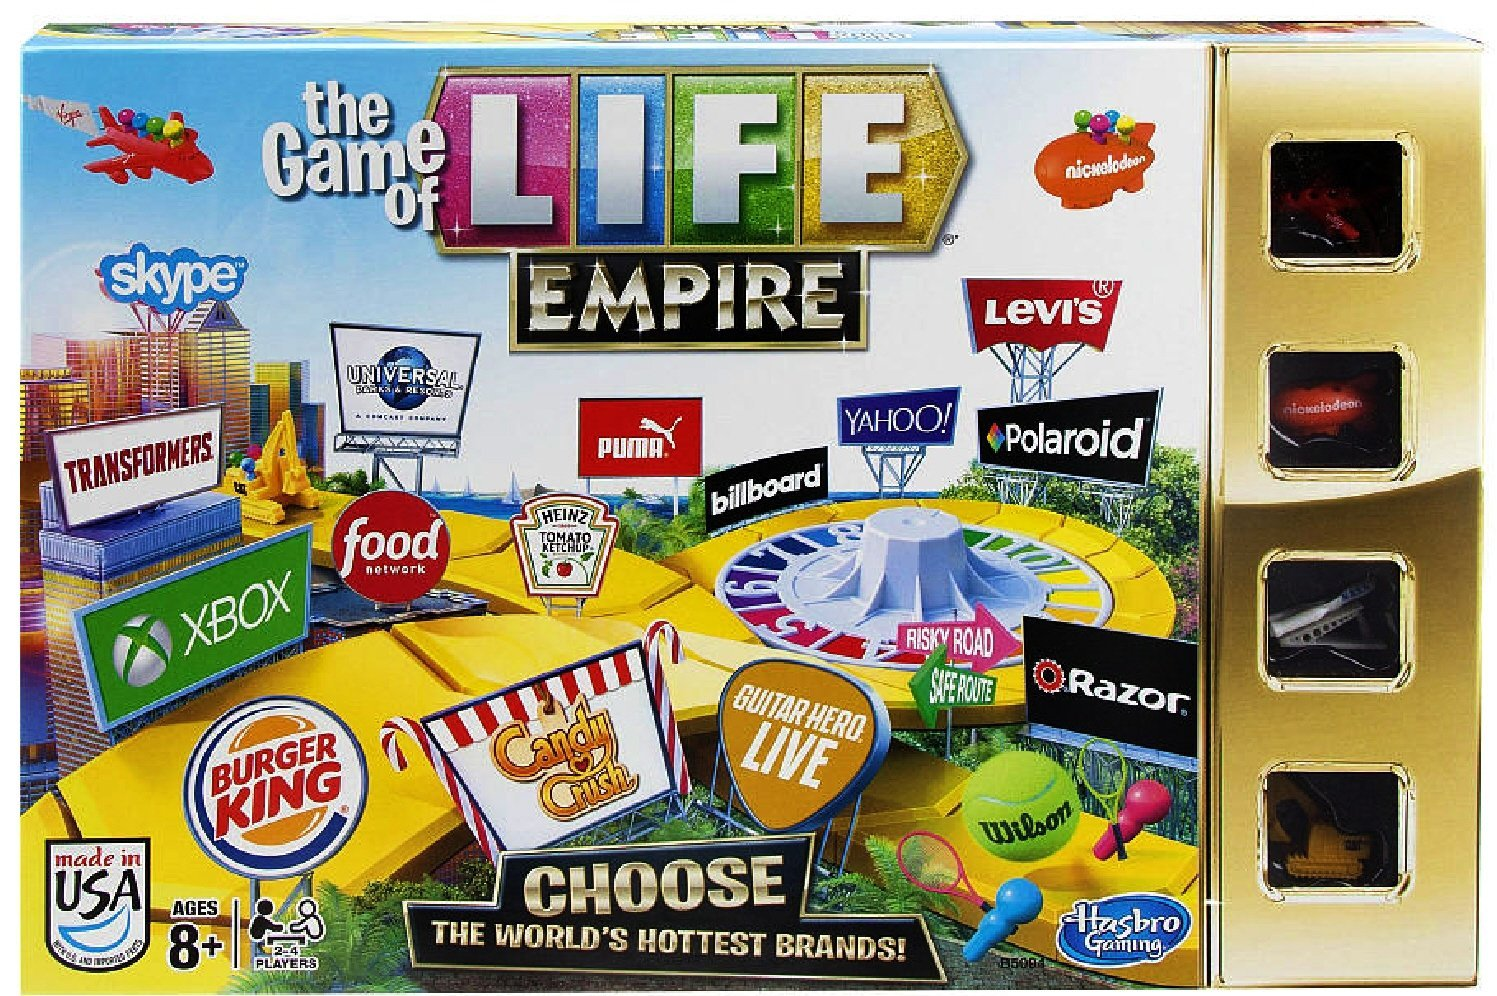 The Game of Life Game Empire Edition, Players can choose the world's hottest brands in The... by